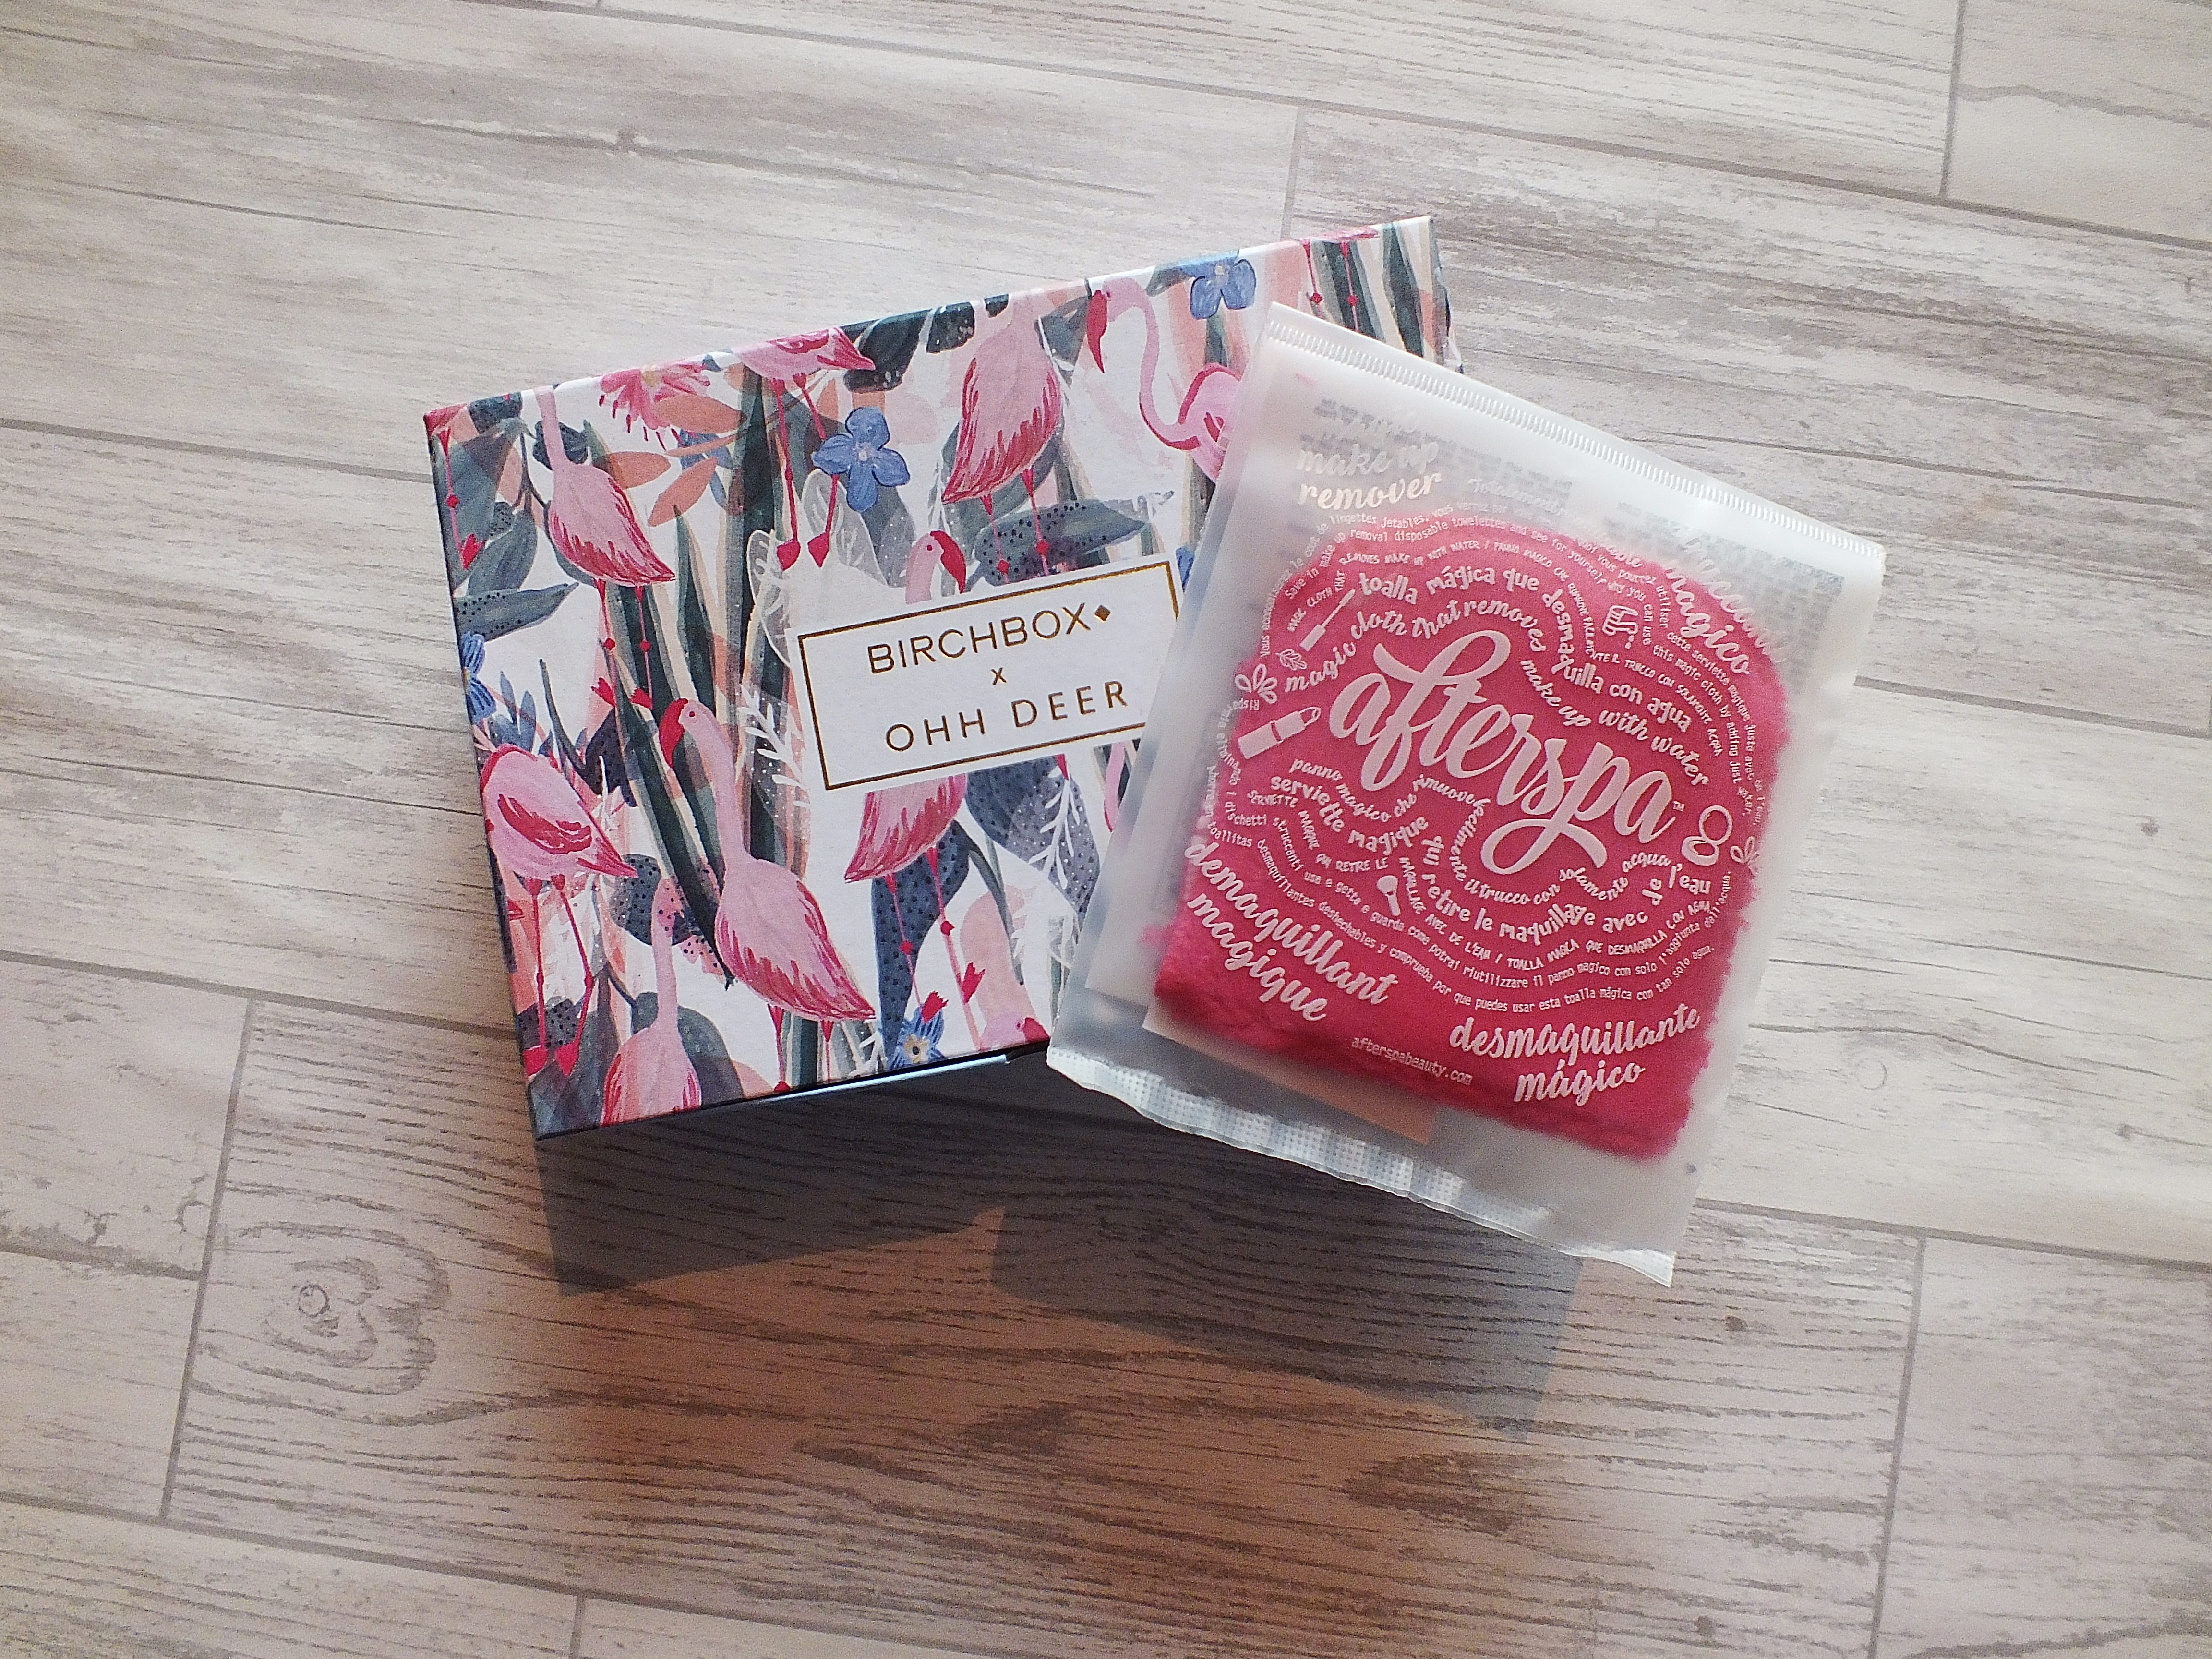 Birchbox x Ohh Deer Afterspa Makeup Remover